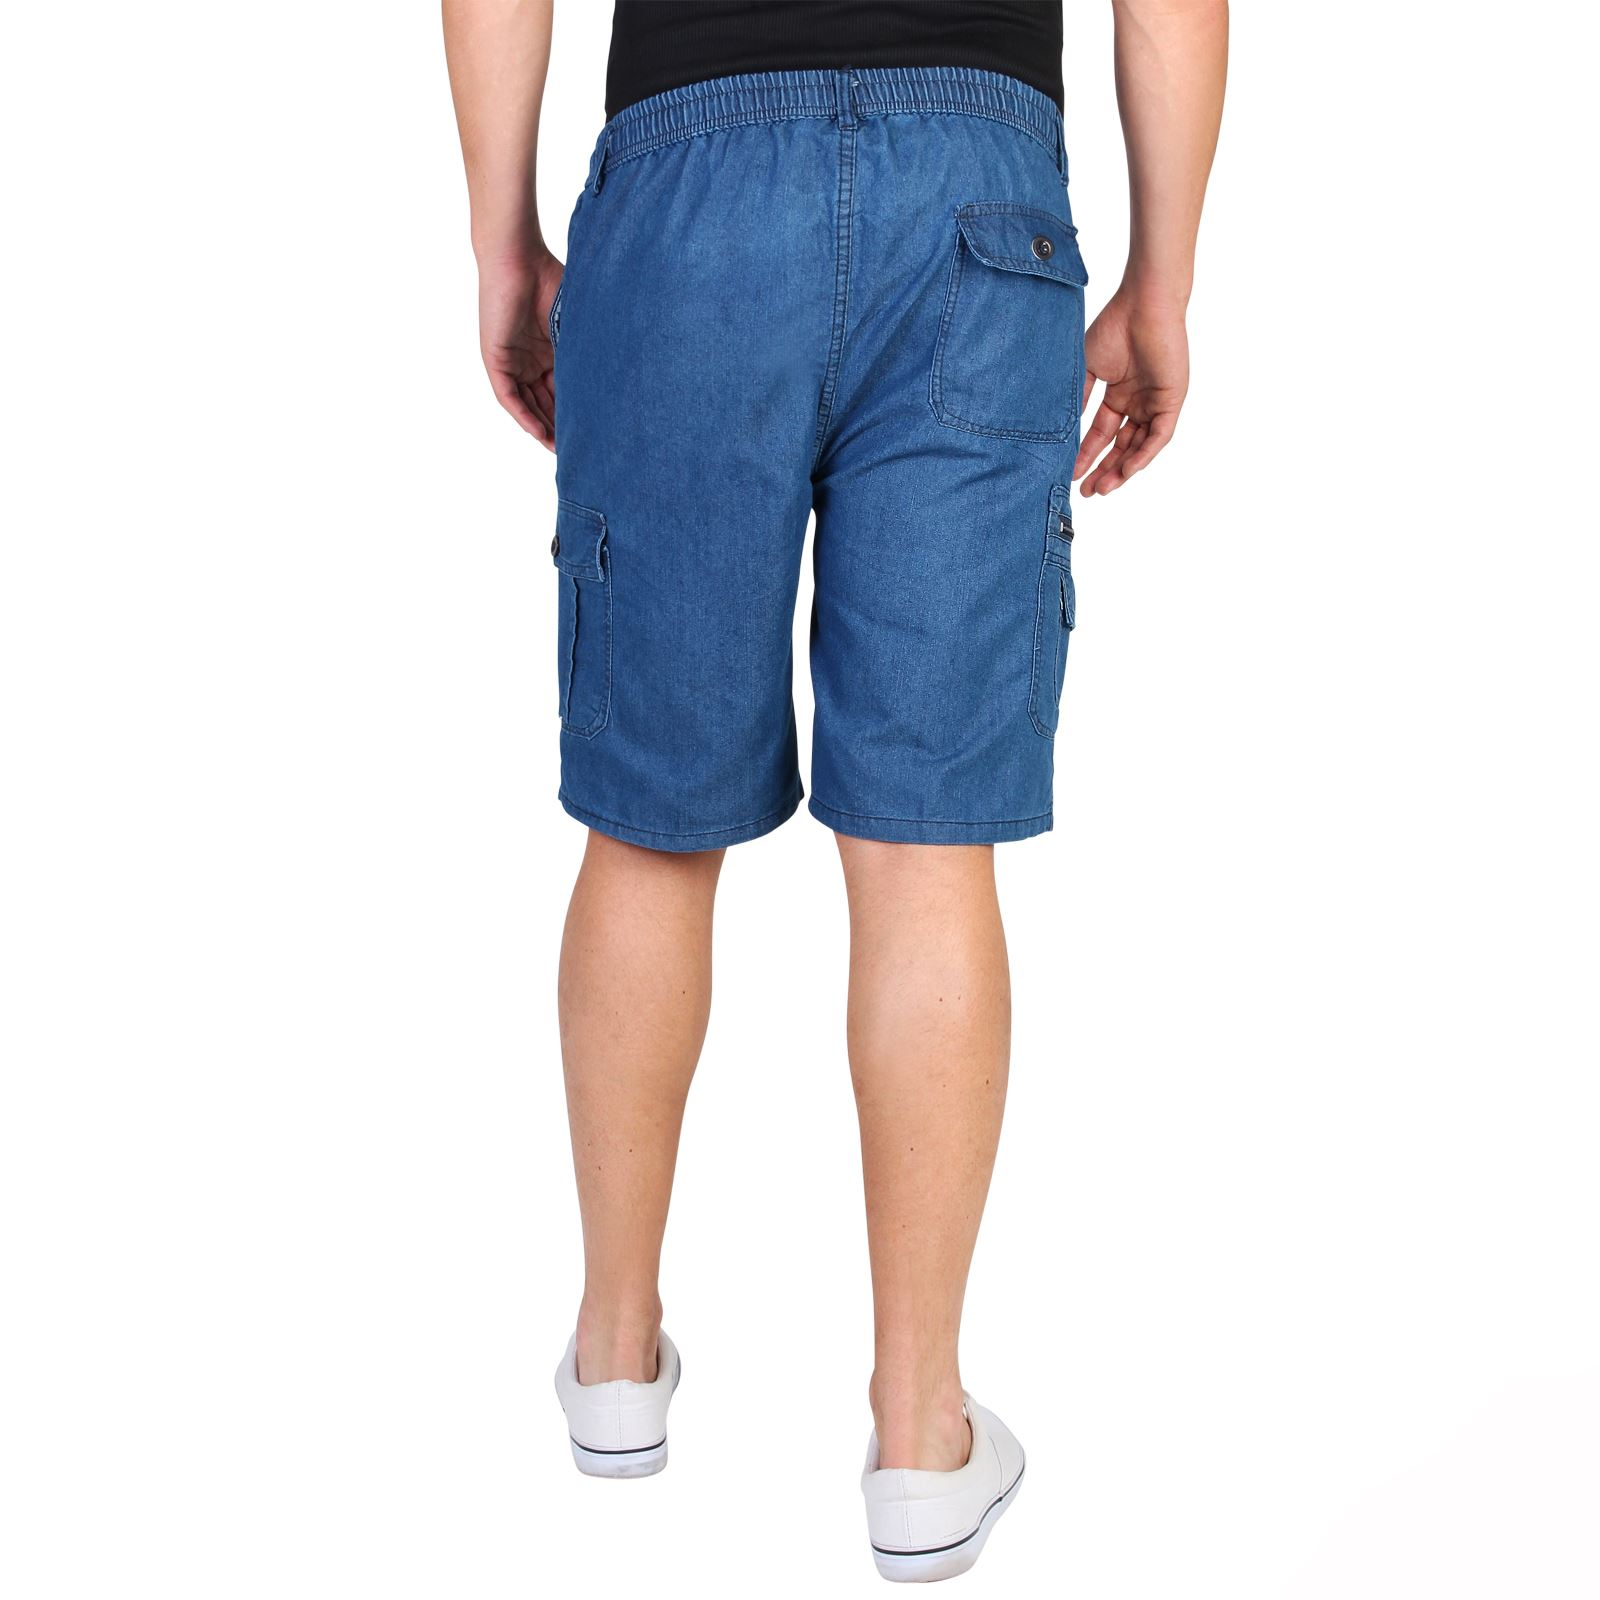 krisp pantalon homme court jean en coton style cargo classiques casual short ebay. Black Bedroom Furniture Sets. Home Design Ideas